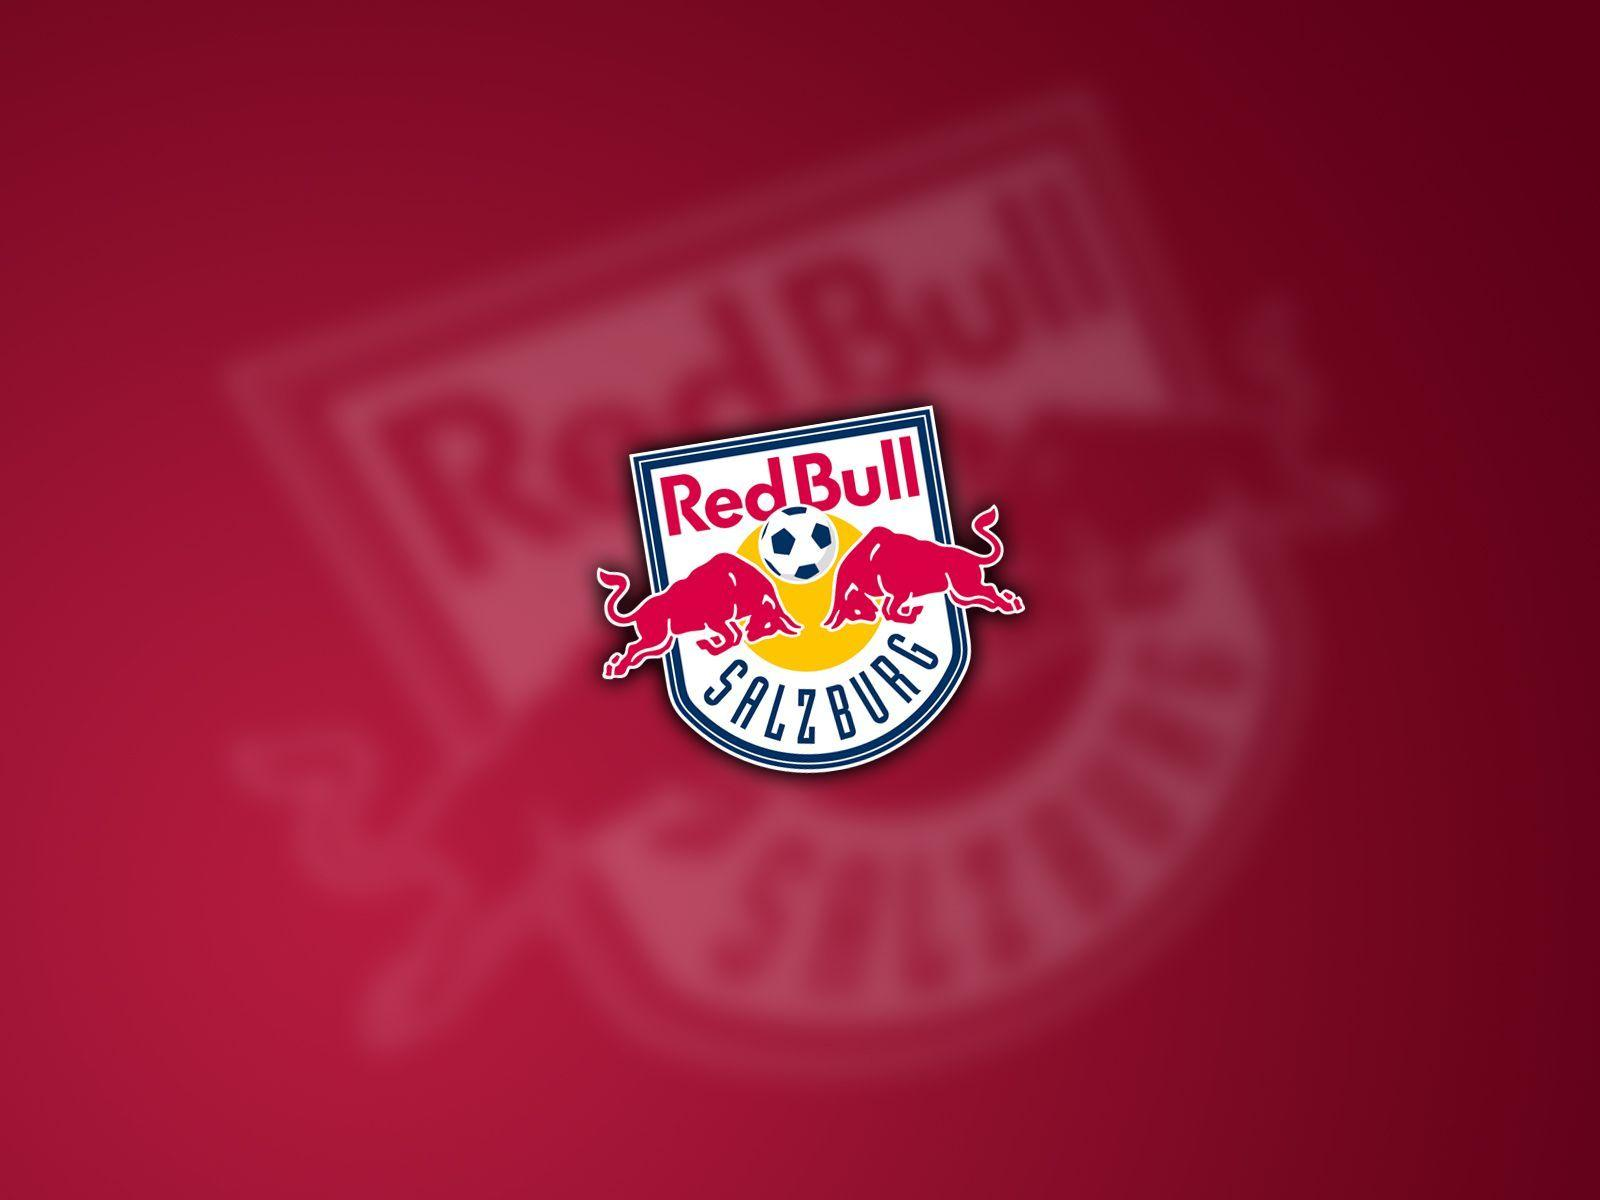 Red Bull Handy Wallpapers Hd Wallpaper Cave